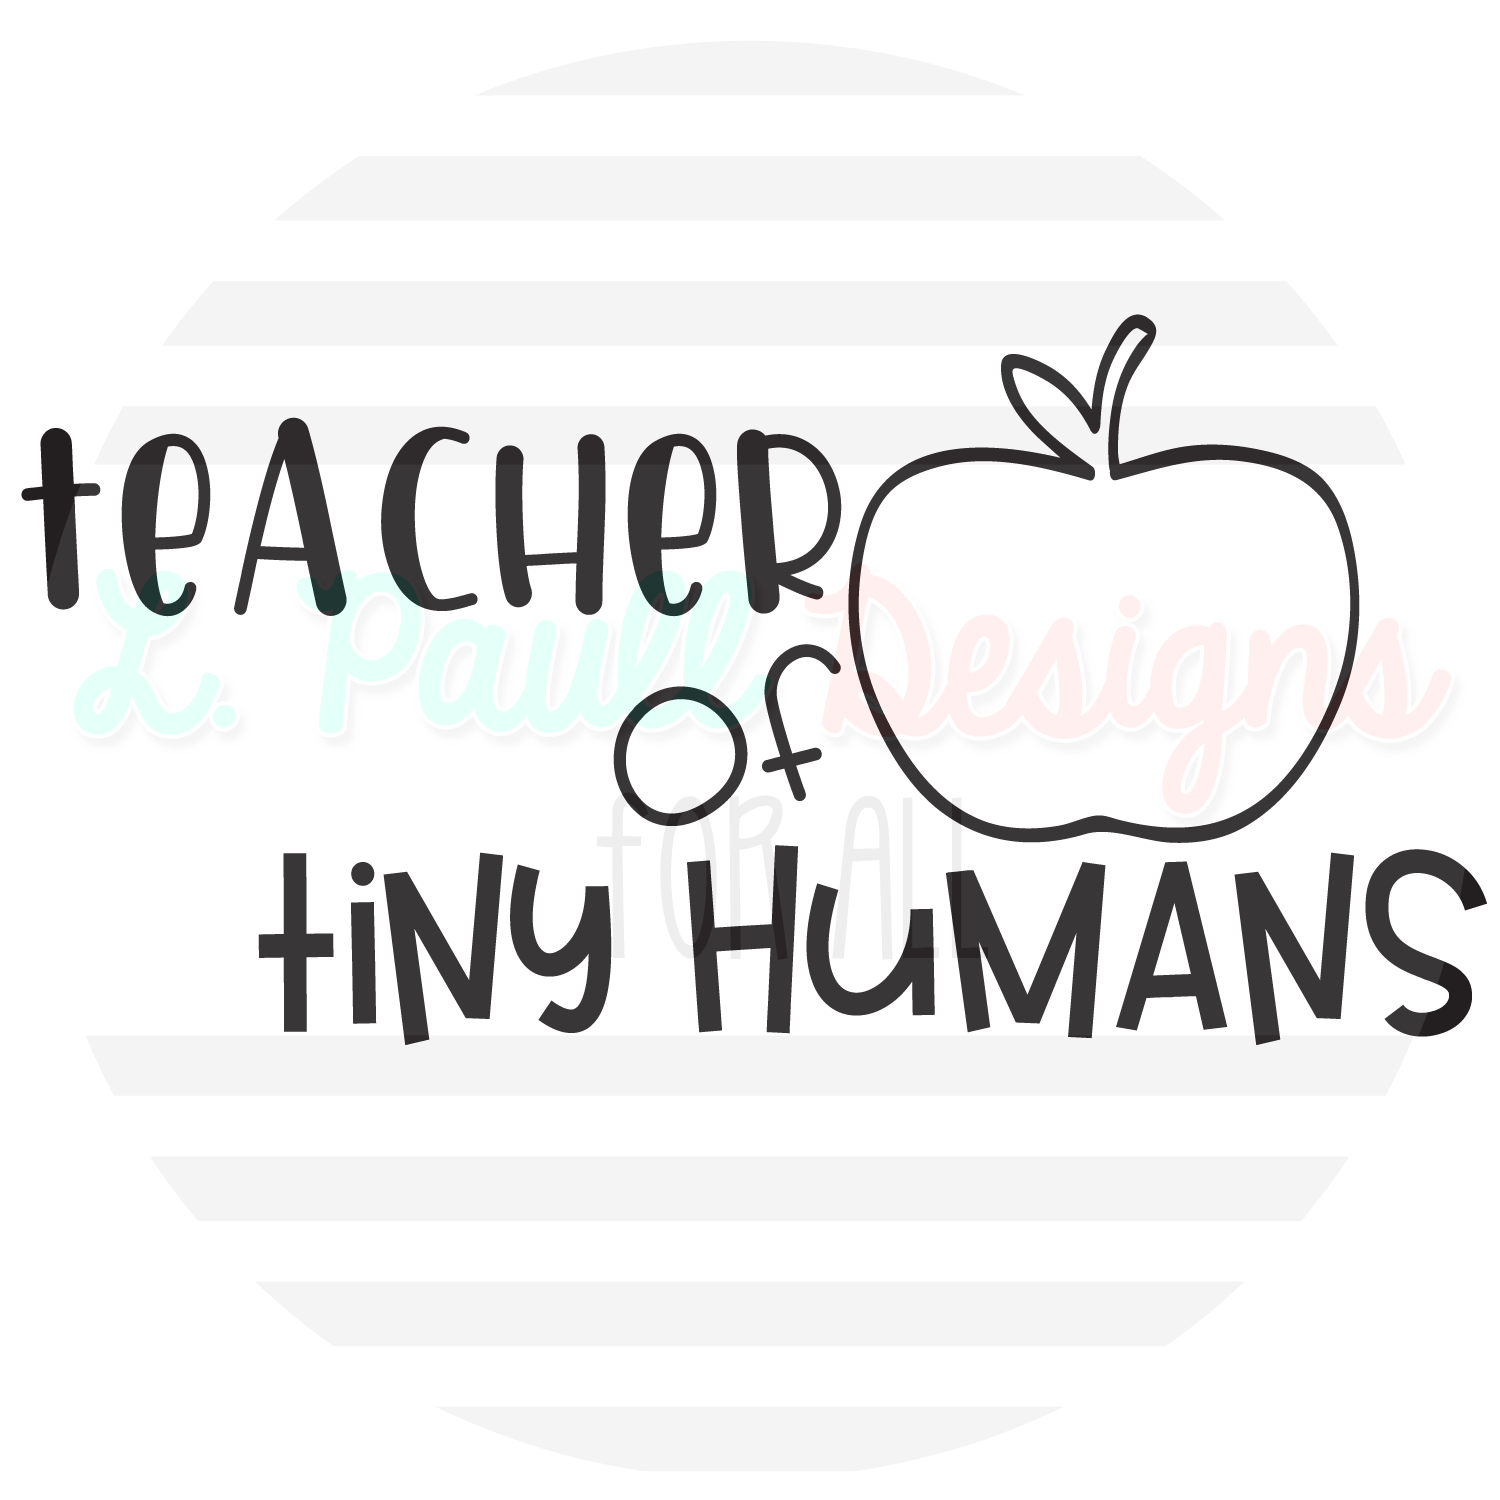 Teacher apple clipart black and white picture free Teacher of Tiny Humans T-Shirt – L. Paull Designs for All picture free